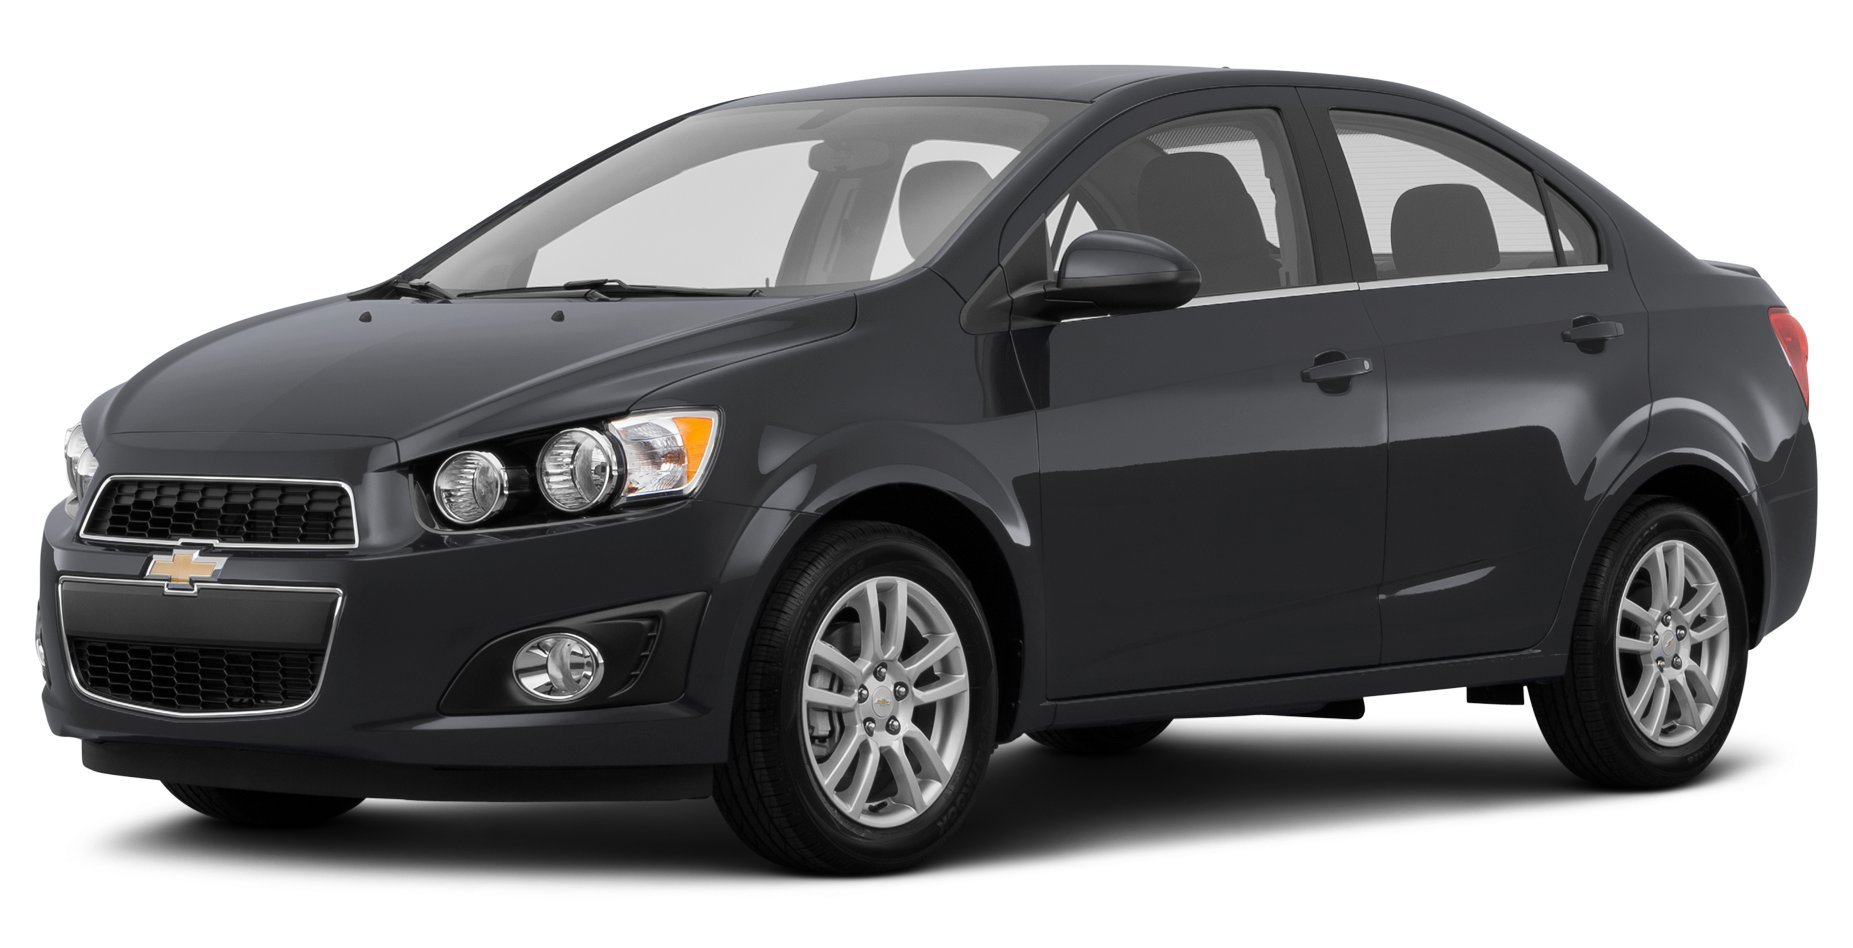 2014 nissan versa note reviews images and specs vehicles. Black Bedroom Furniture Sets. Home Design Ideas